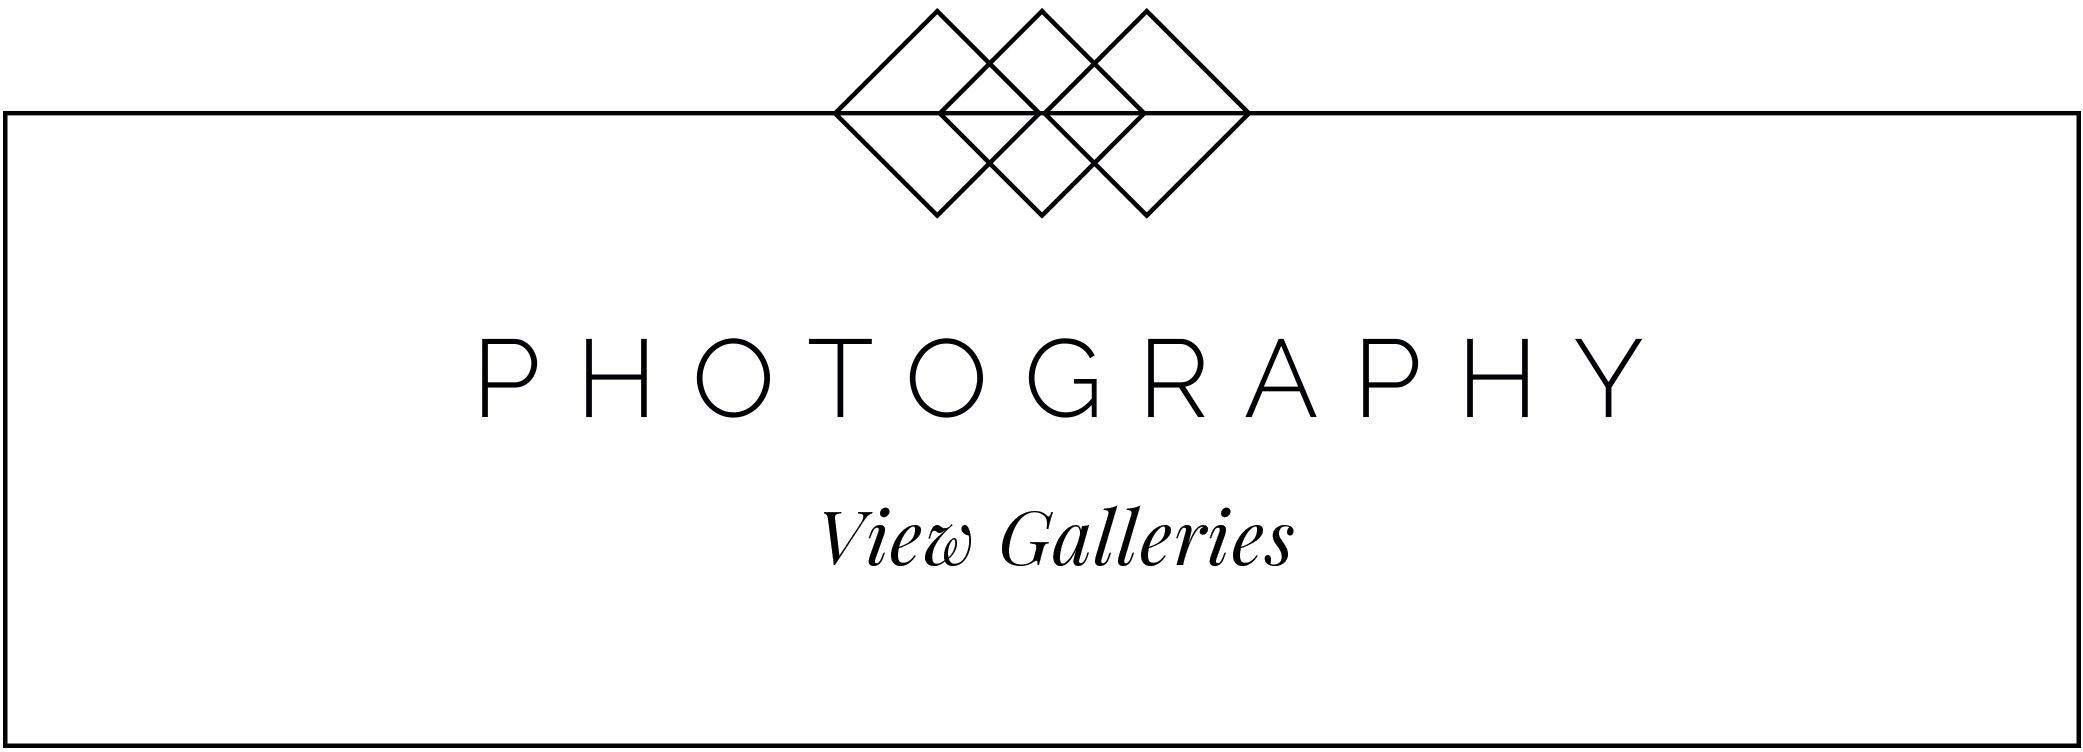 gallerybutton_photos.jpg